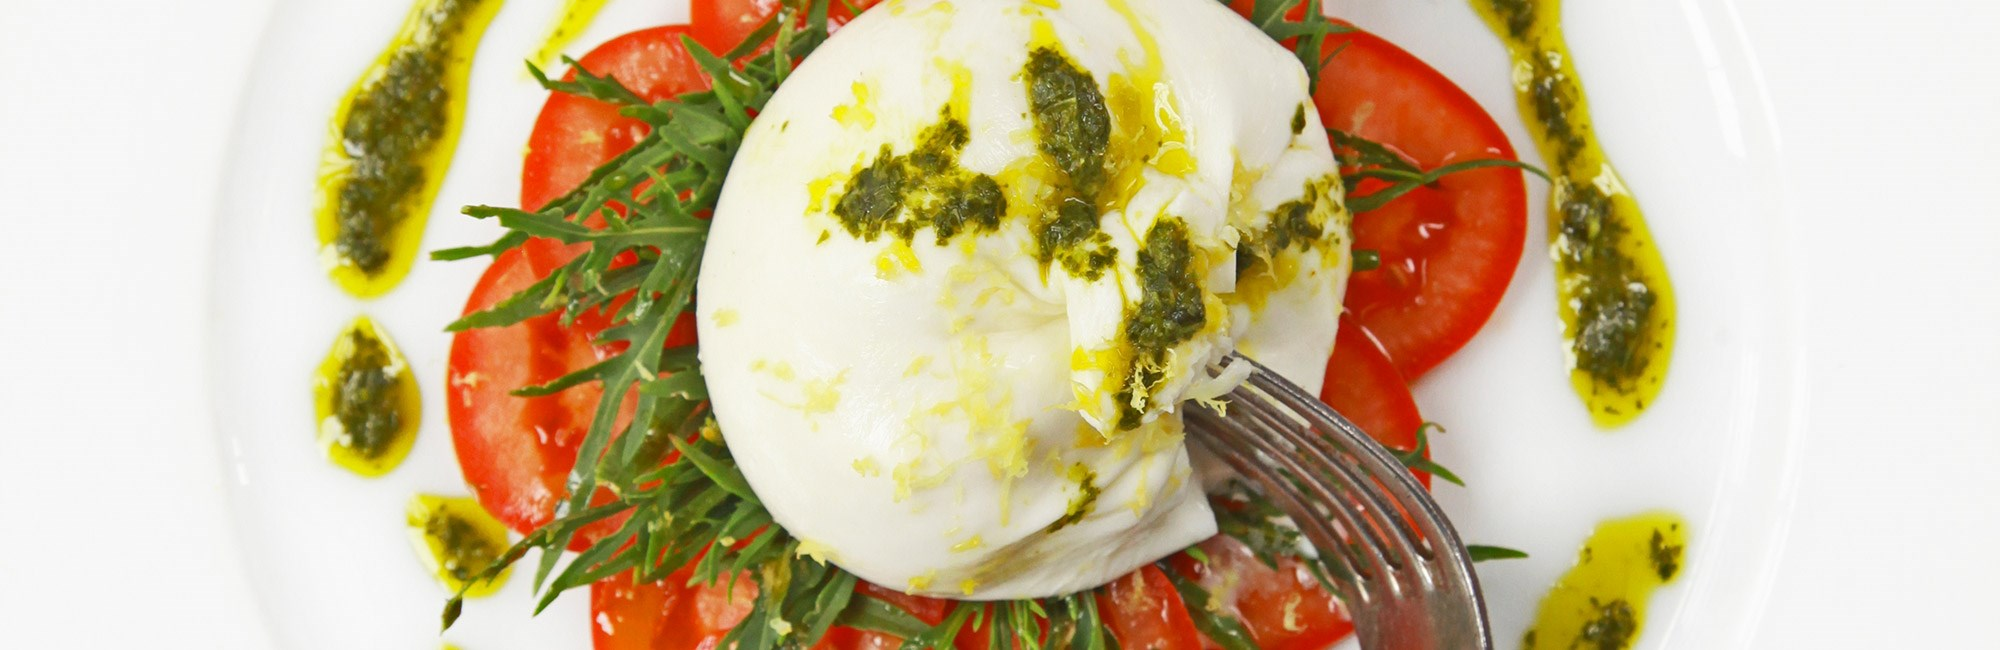 rivington shoreditch burrata by lucy richards